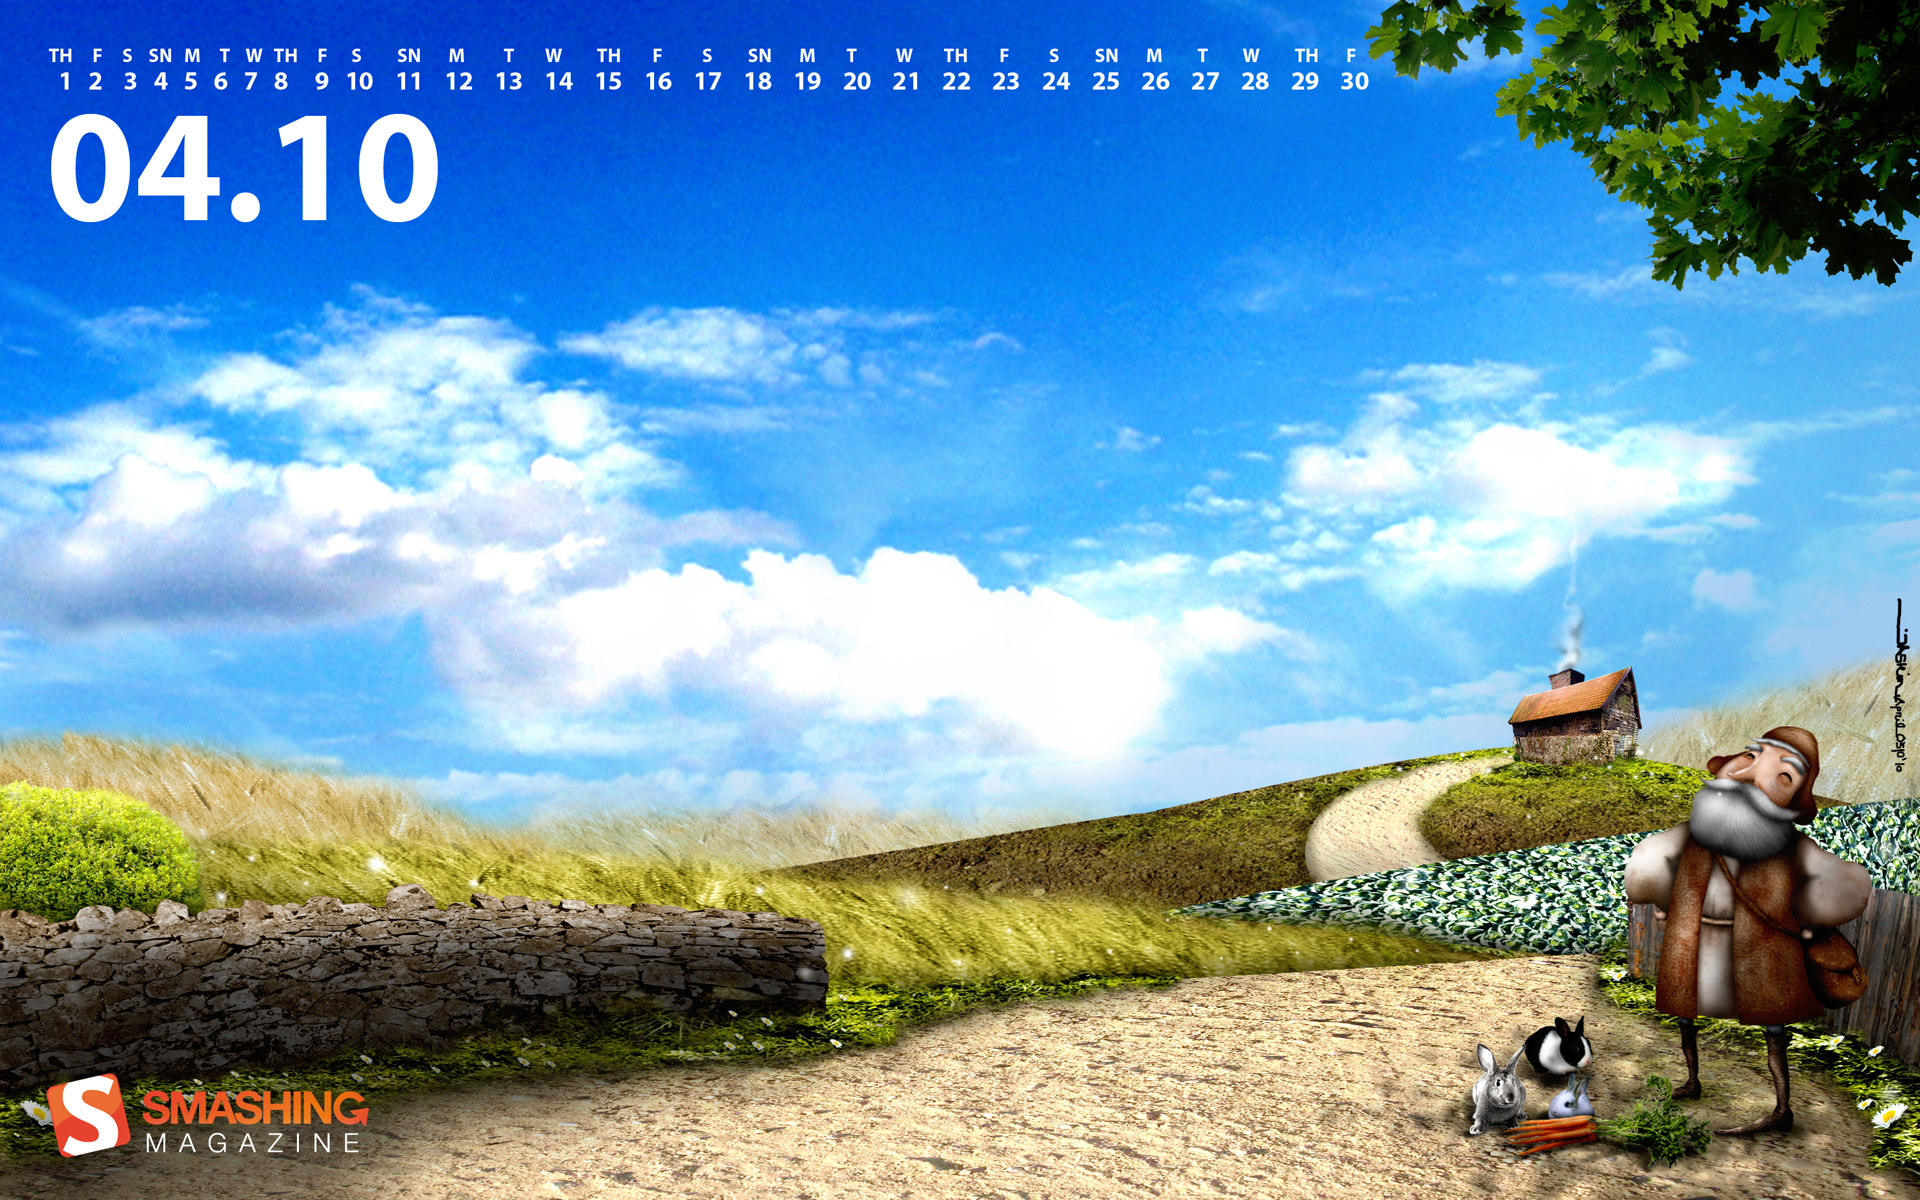 Calendar Wallpaper for April 6394